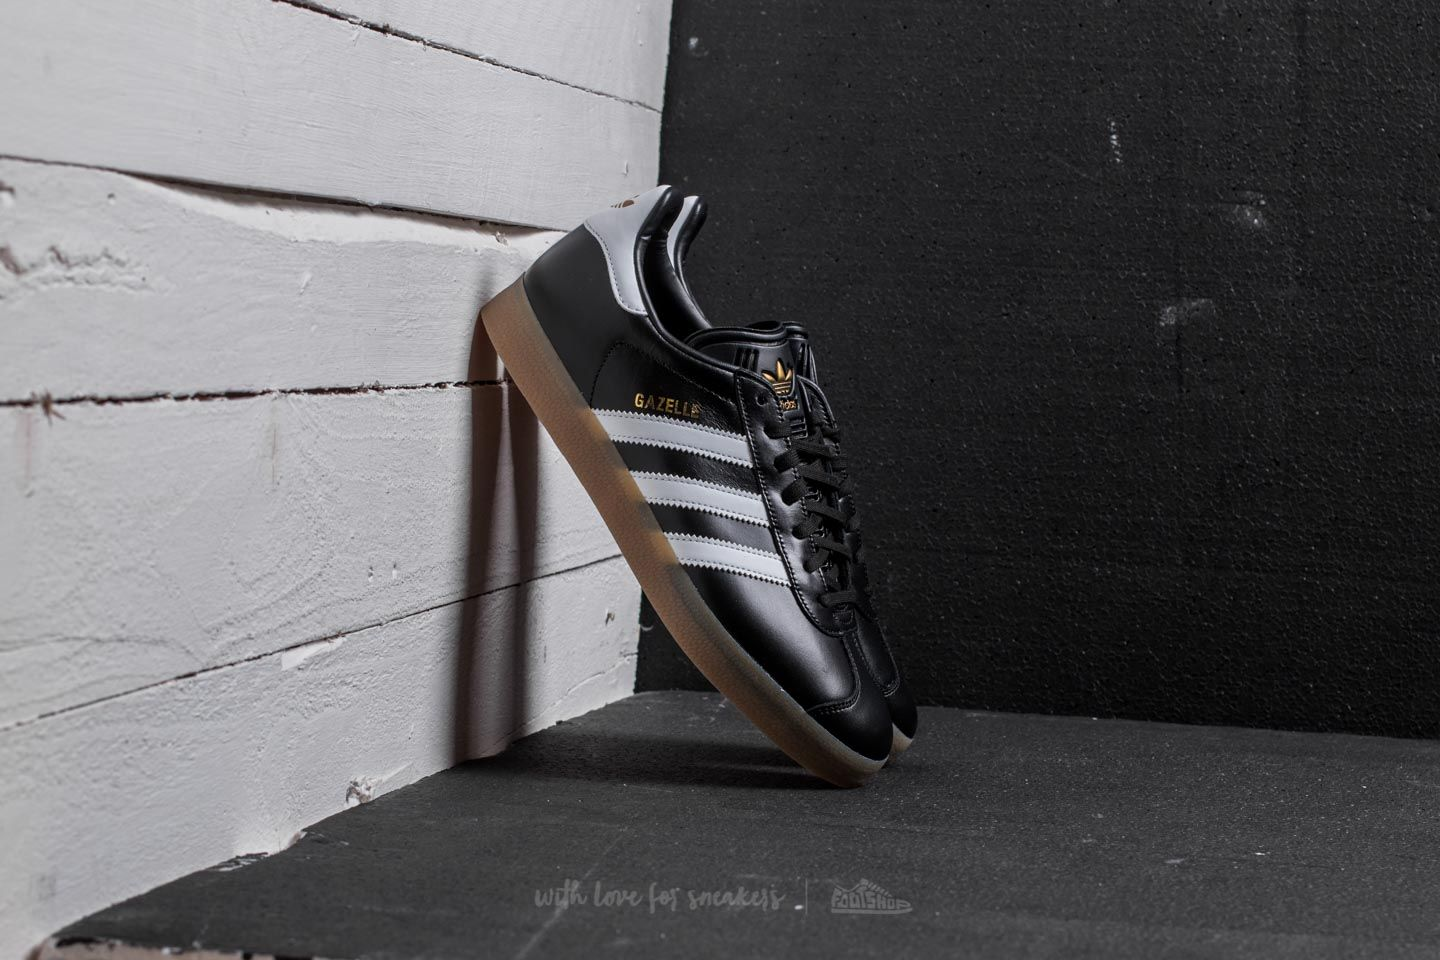 bb68ef94856 adidas Gazelle Core Black  Ftw White  Gold Metalic